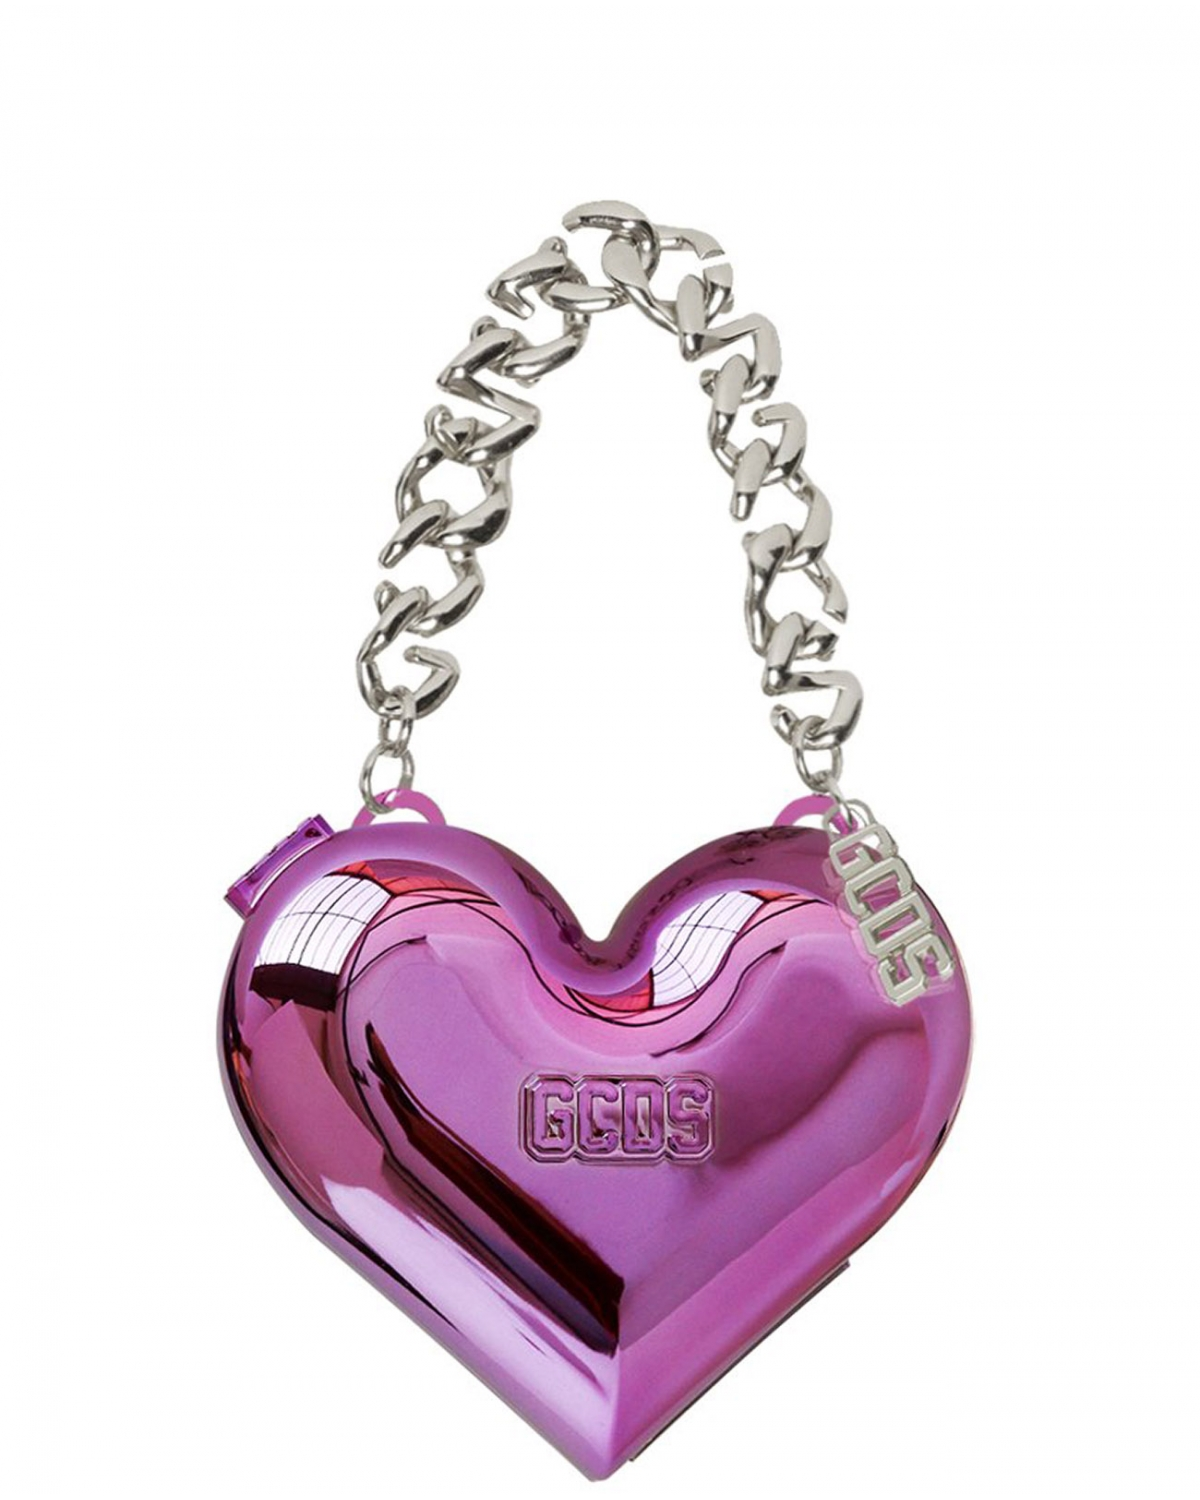 GCDS HEART METALLIC BAG